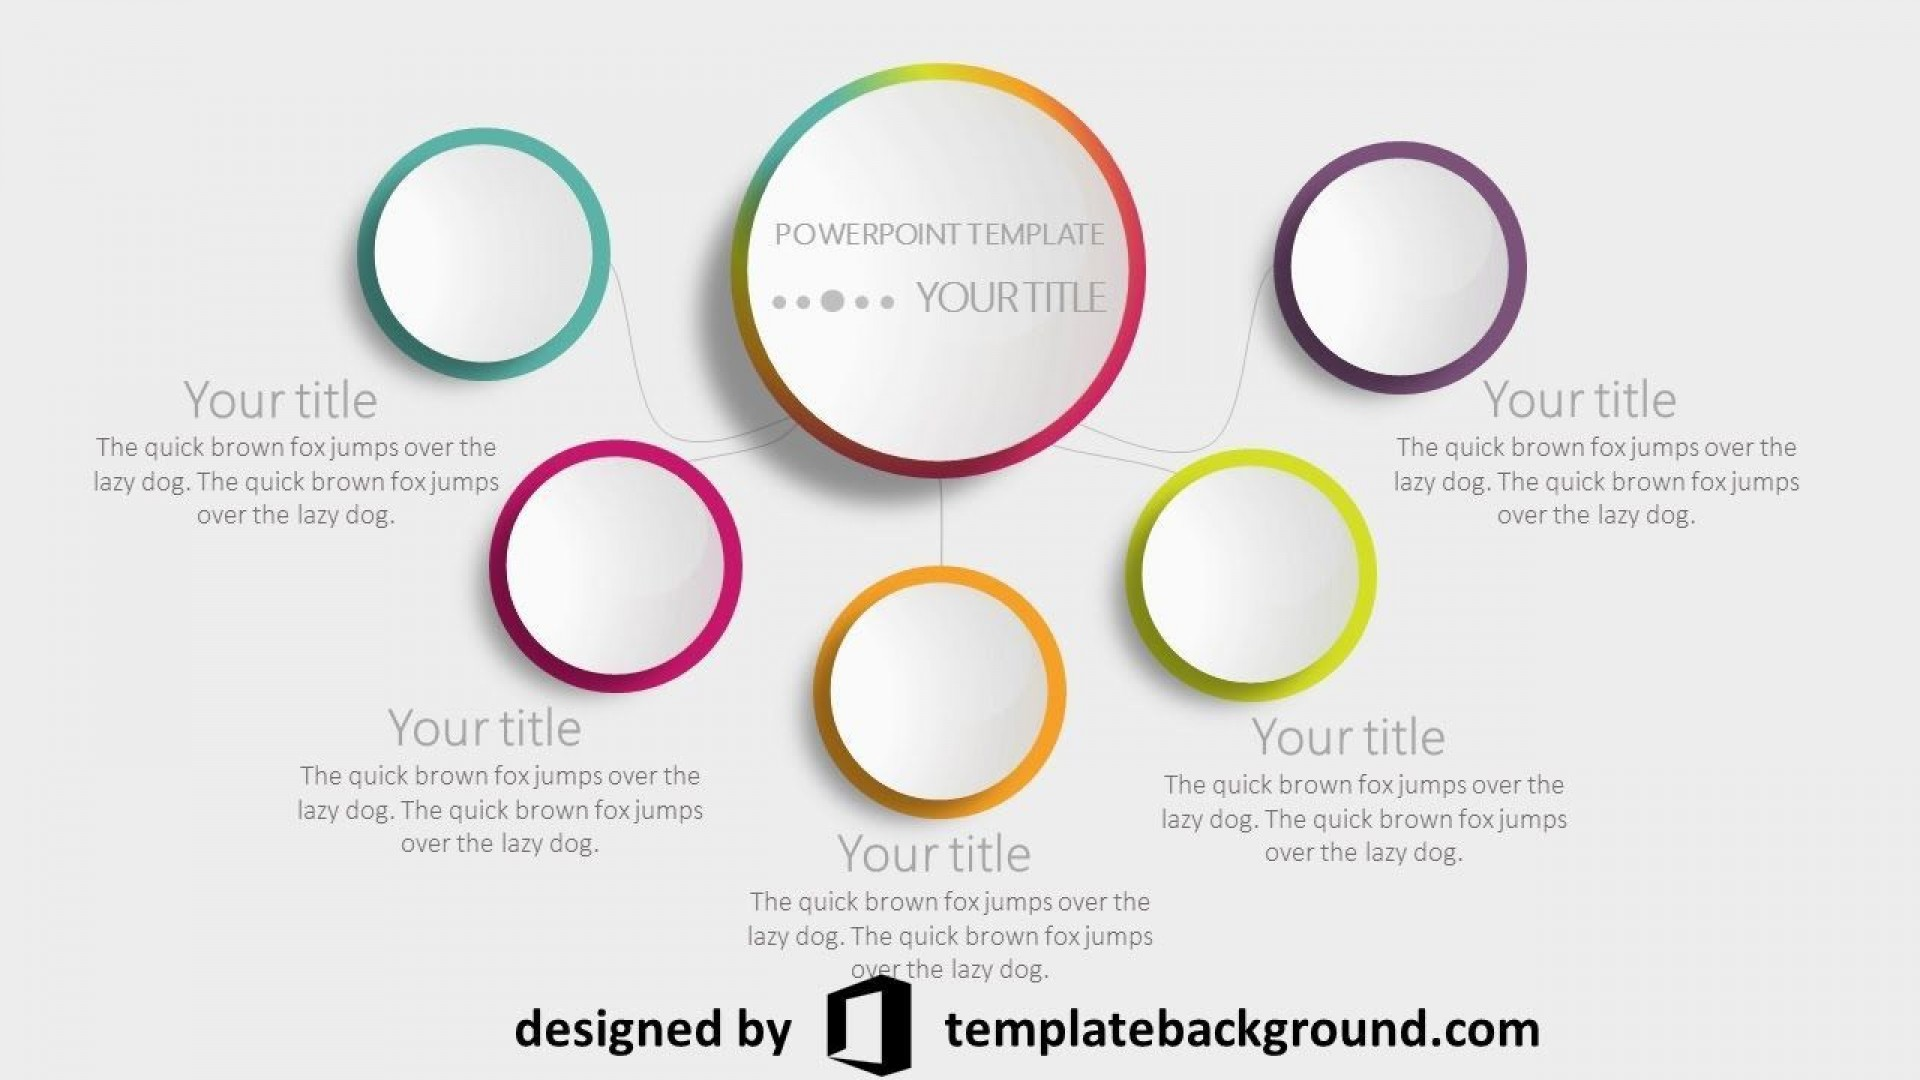 001 Magnificent Free 3d Animated Powerpoint Template Download Design  2017 2016 Tinyppt1920